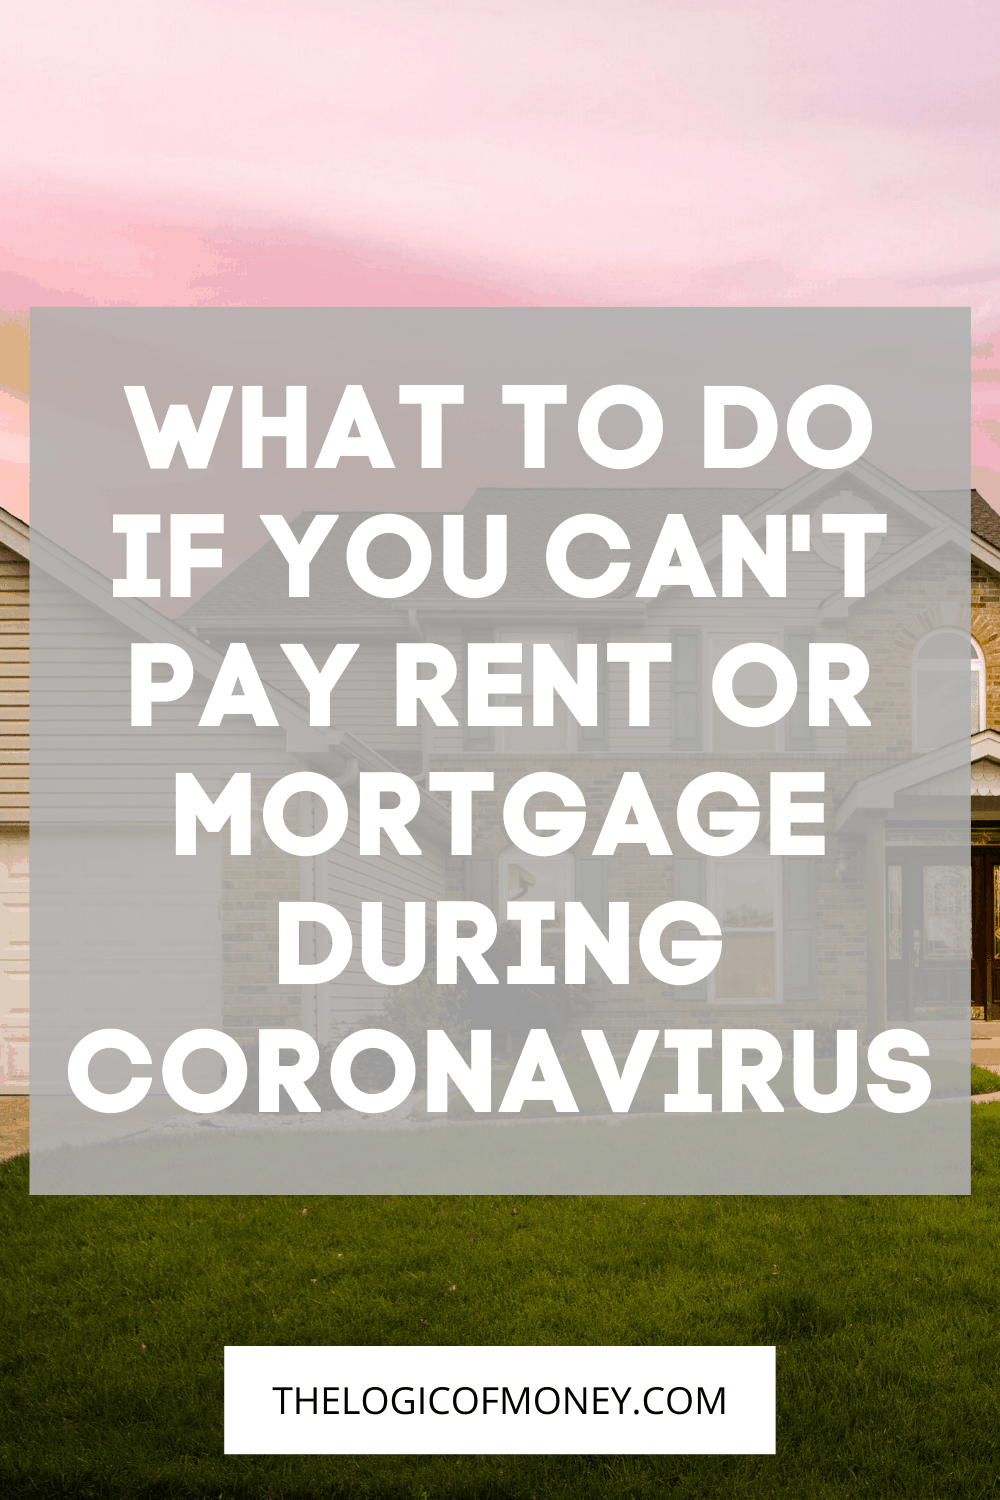 What to do if you can't pay rent or mortgage during coronavirus